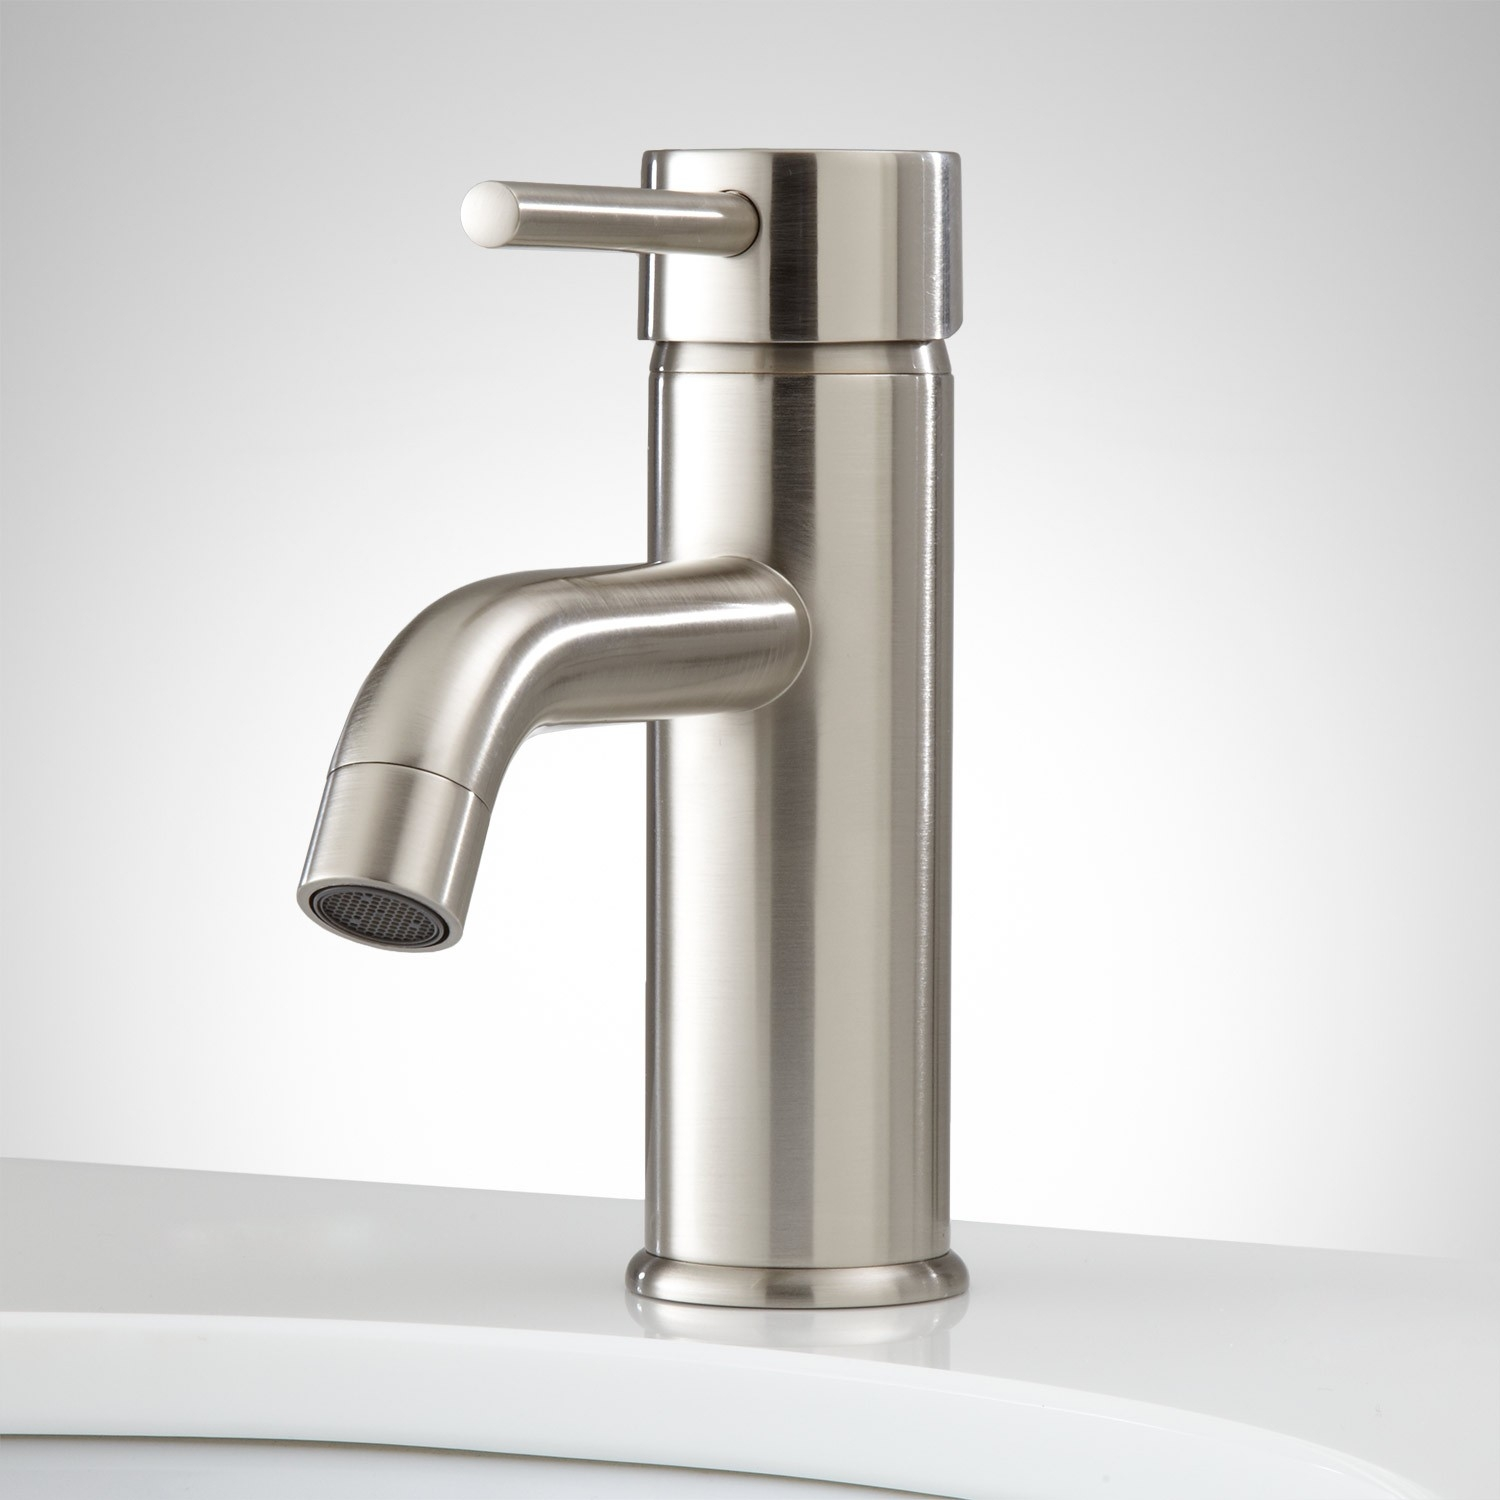 Ideas, hewitt single hole bathroom faucet with pop up drain bathroom pertaining to measurements 1500 x 1500  .